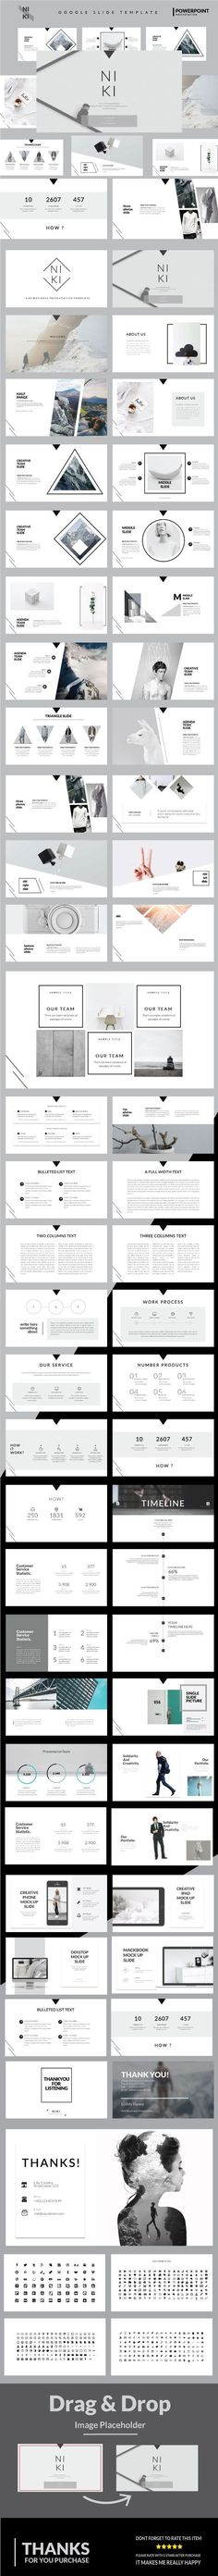 Niki Multipurpose Powerpoint Template - Niki has a professional, ultra-modern and unique design, where each slide is created with love and attention to detail. Niki is a multipurpose Powerpoint template that can be used for any type of presentation Design Visual, Graphisches Design, Slide Design, Layout Design, Graphic Design, Design Presentation, Presentation Templates, Business Presentation, Presentation Folder